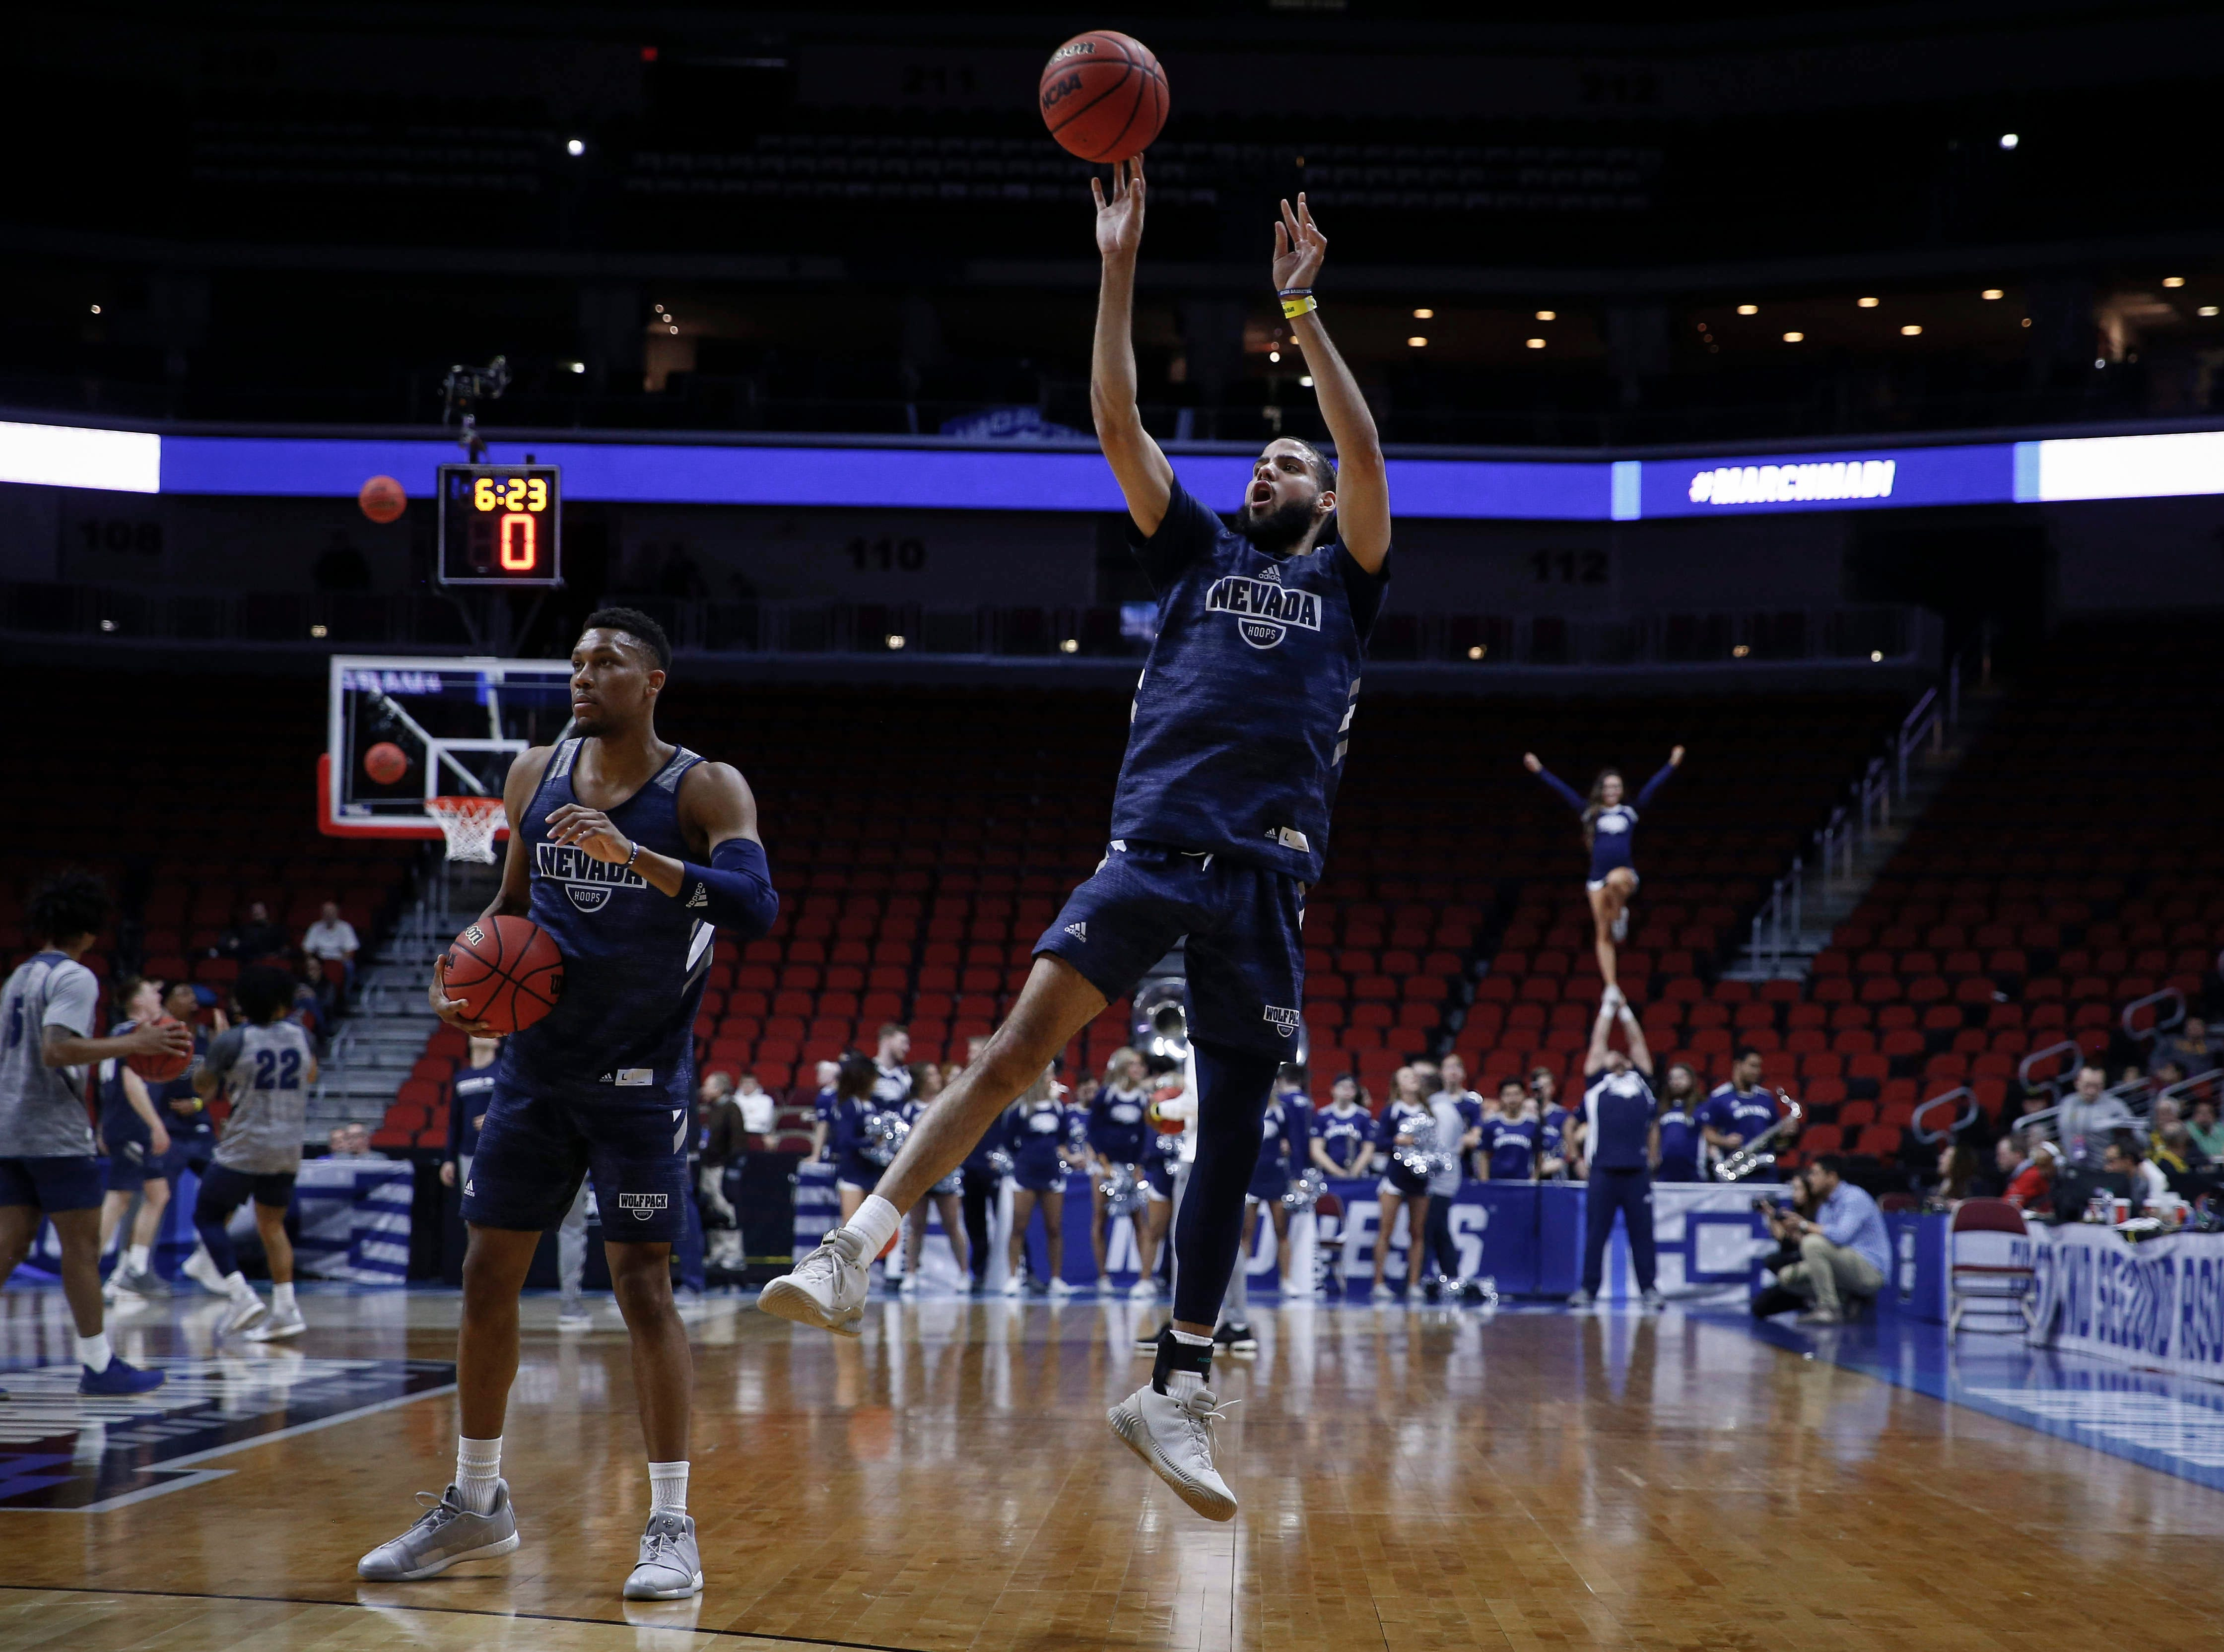 Nevada senior Cody Martin fires an off balance shot during open practice on Wednesday, March 20, 2019, at Wells Fargo Arena in Des Moines, Iowa.